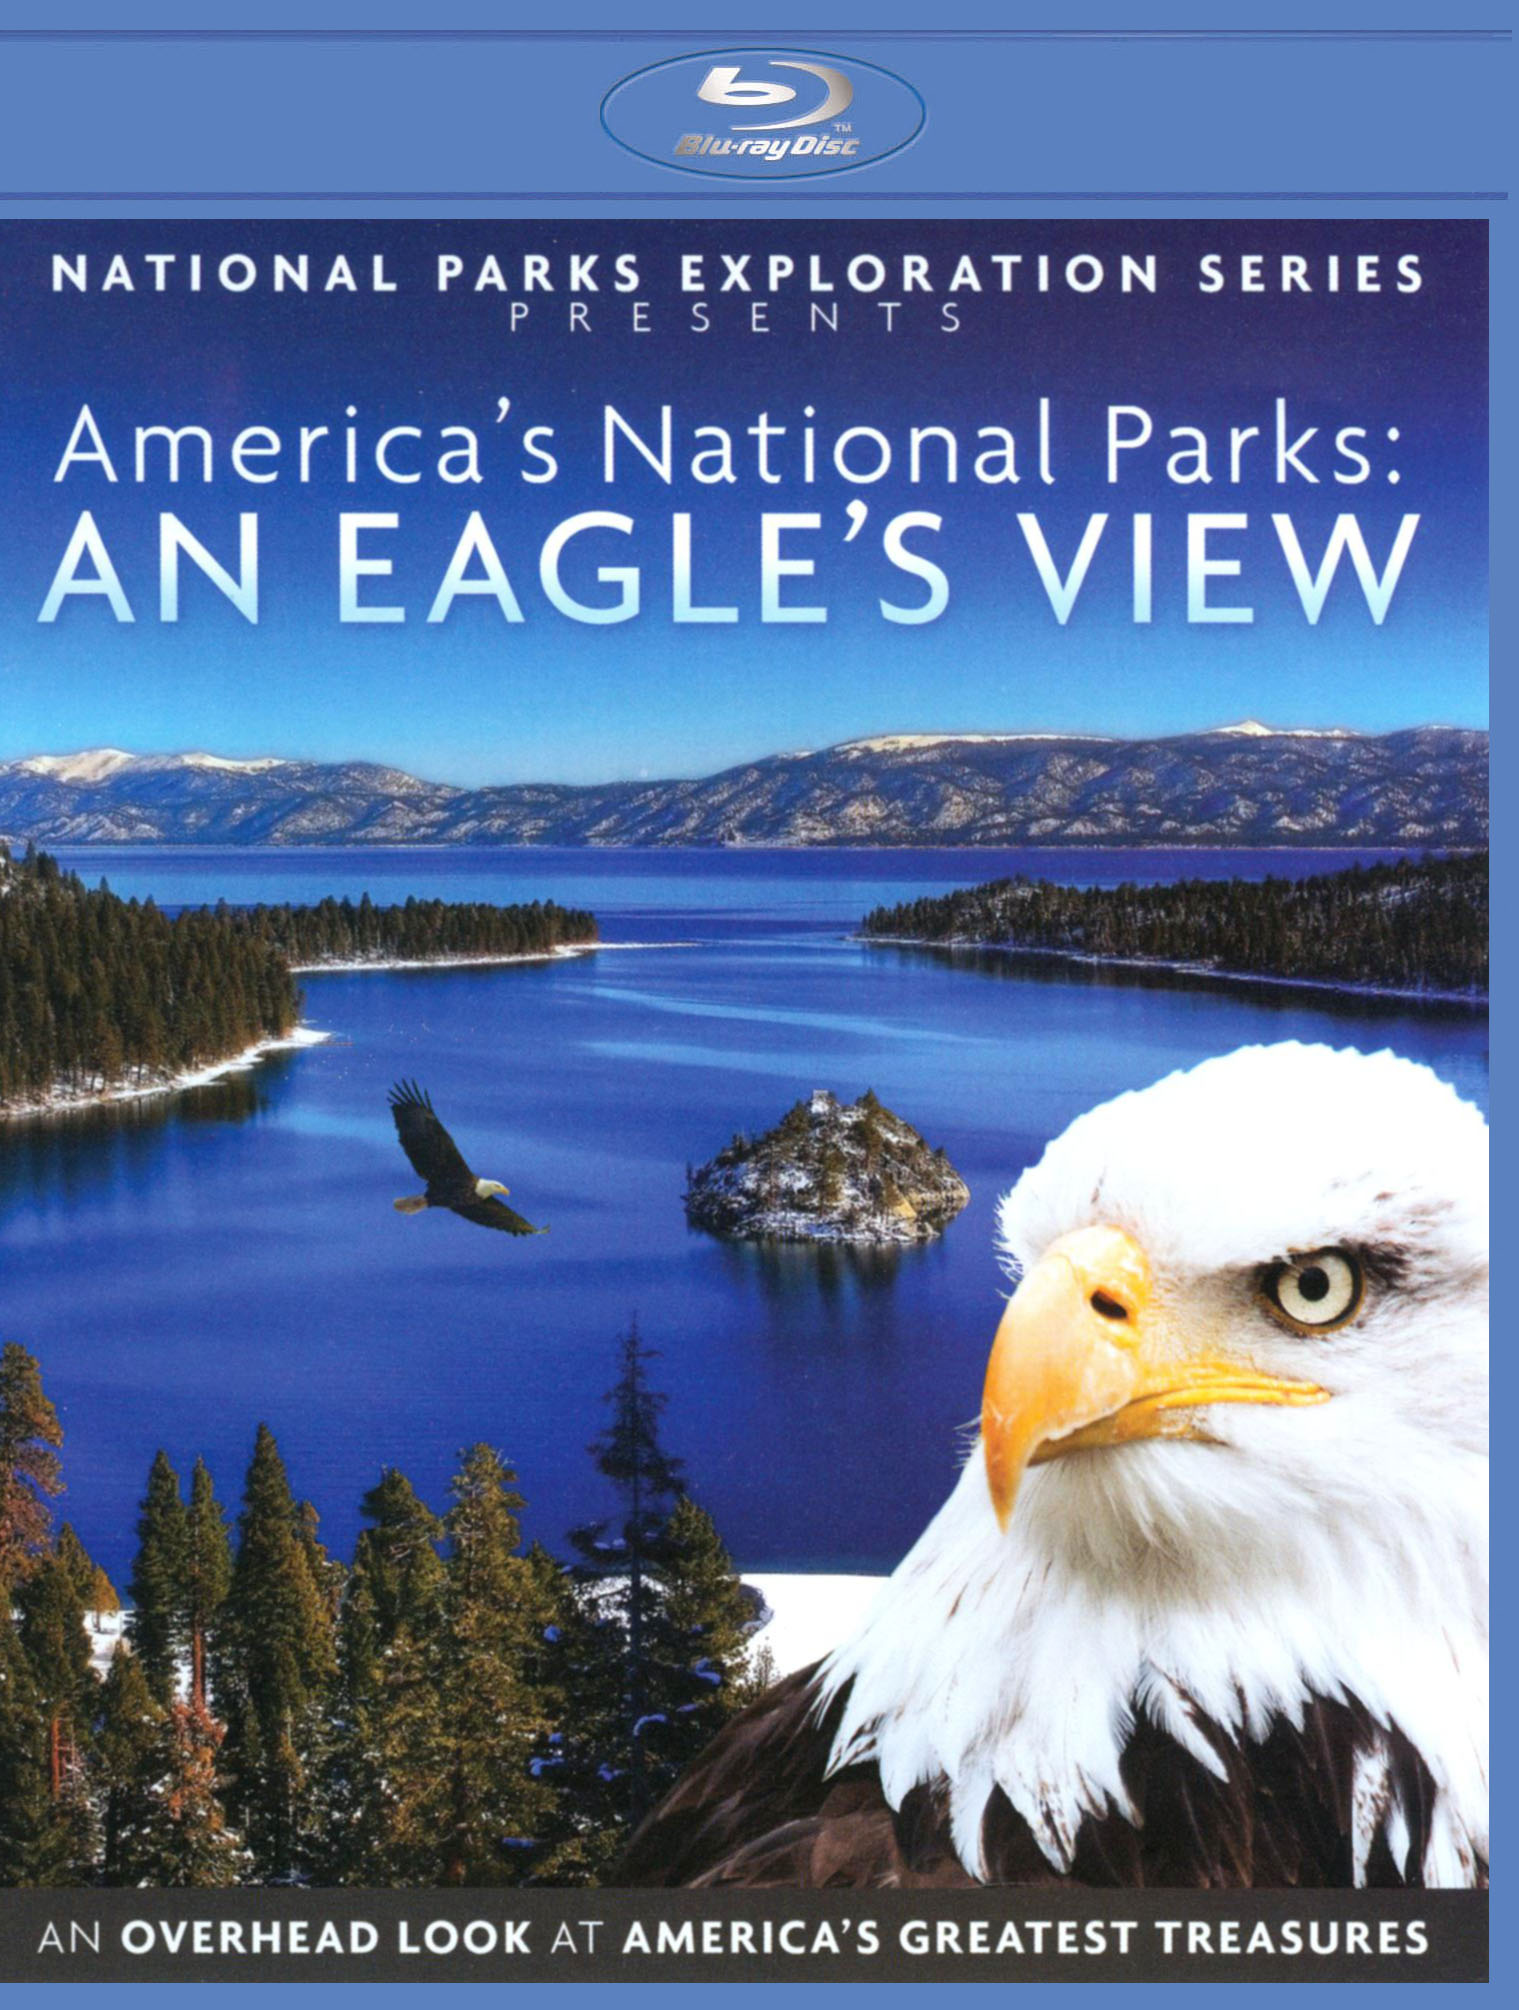 National Parks Exploration Series: America's National Parks - An Eagle's View